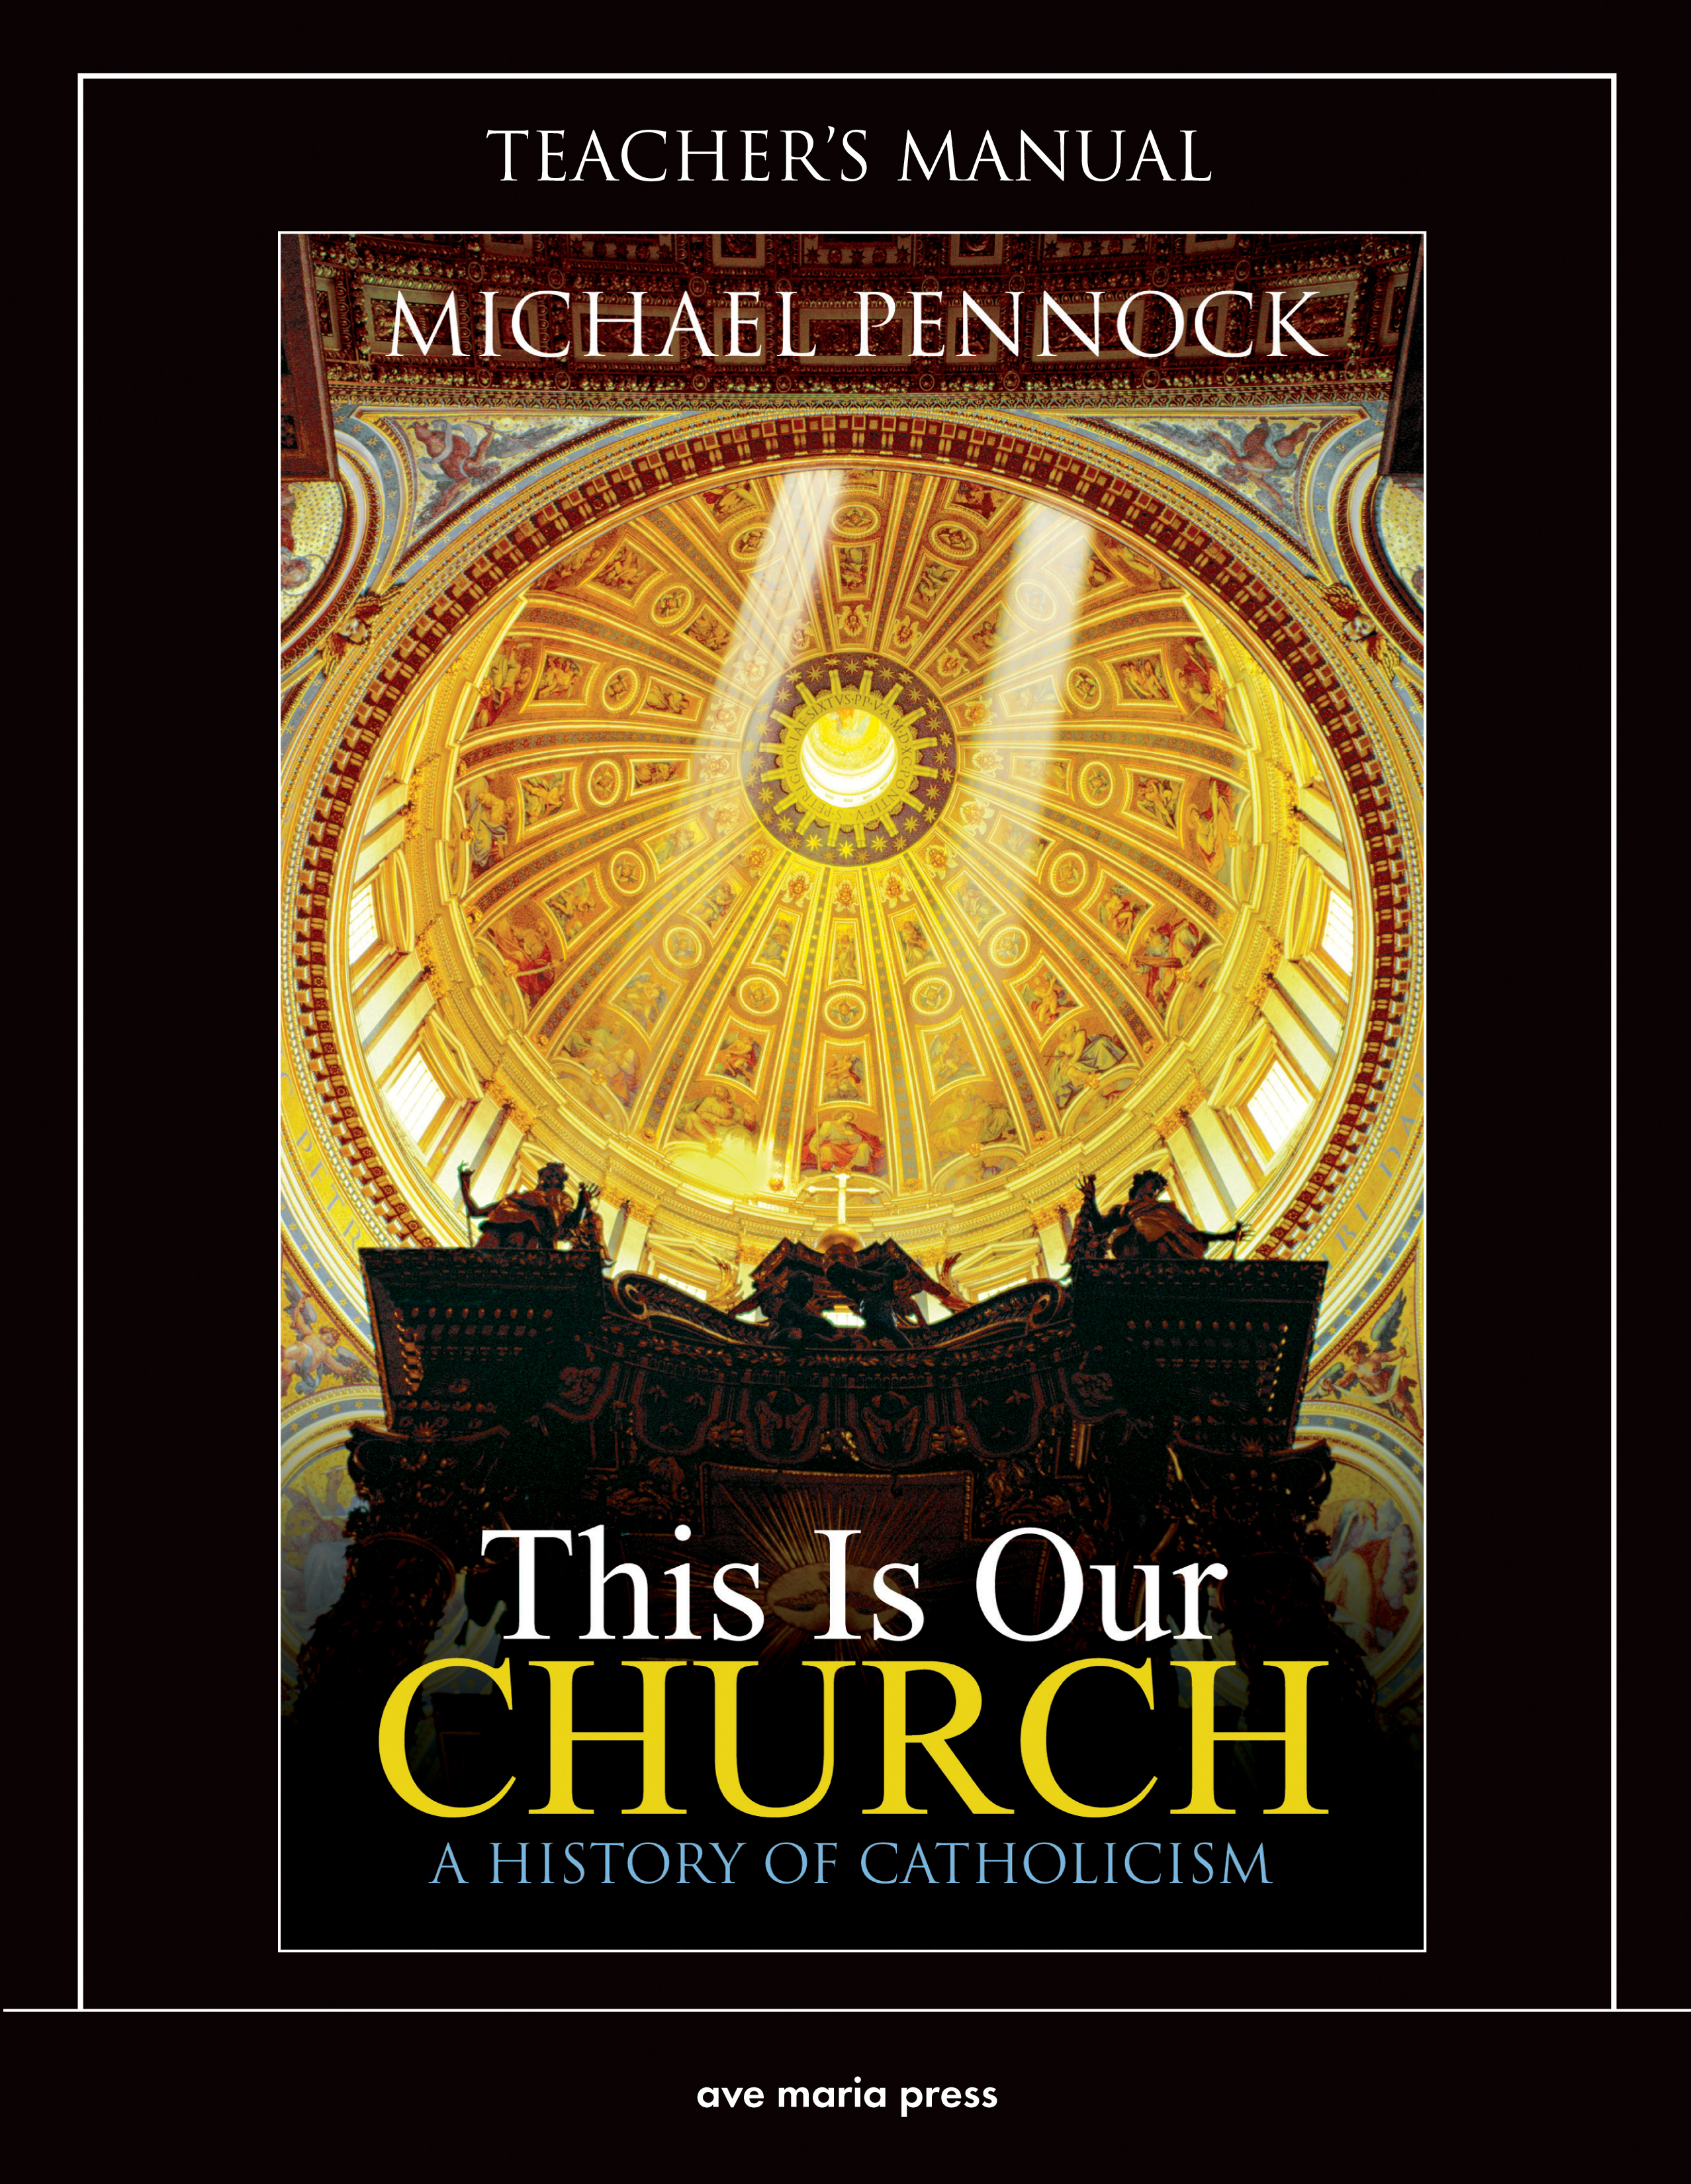 This Is Our Church: A History of Catholicism (Teacher's Manual)